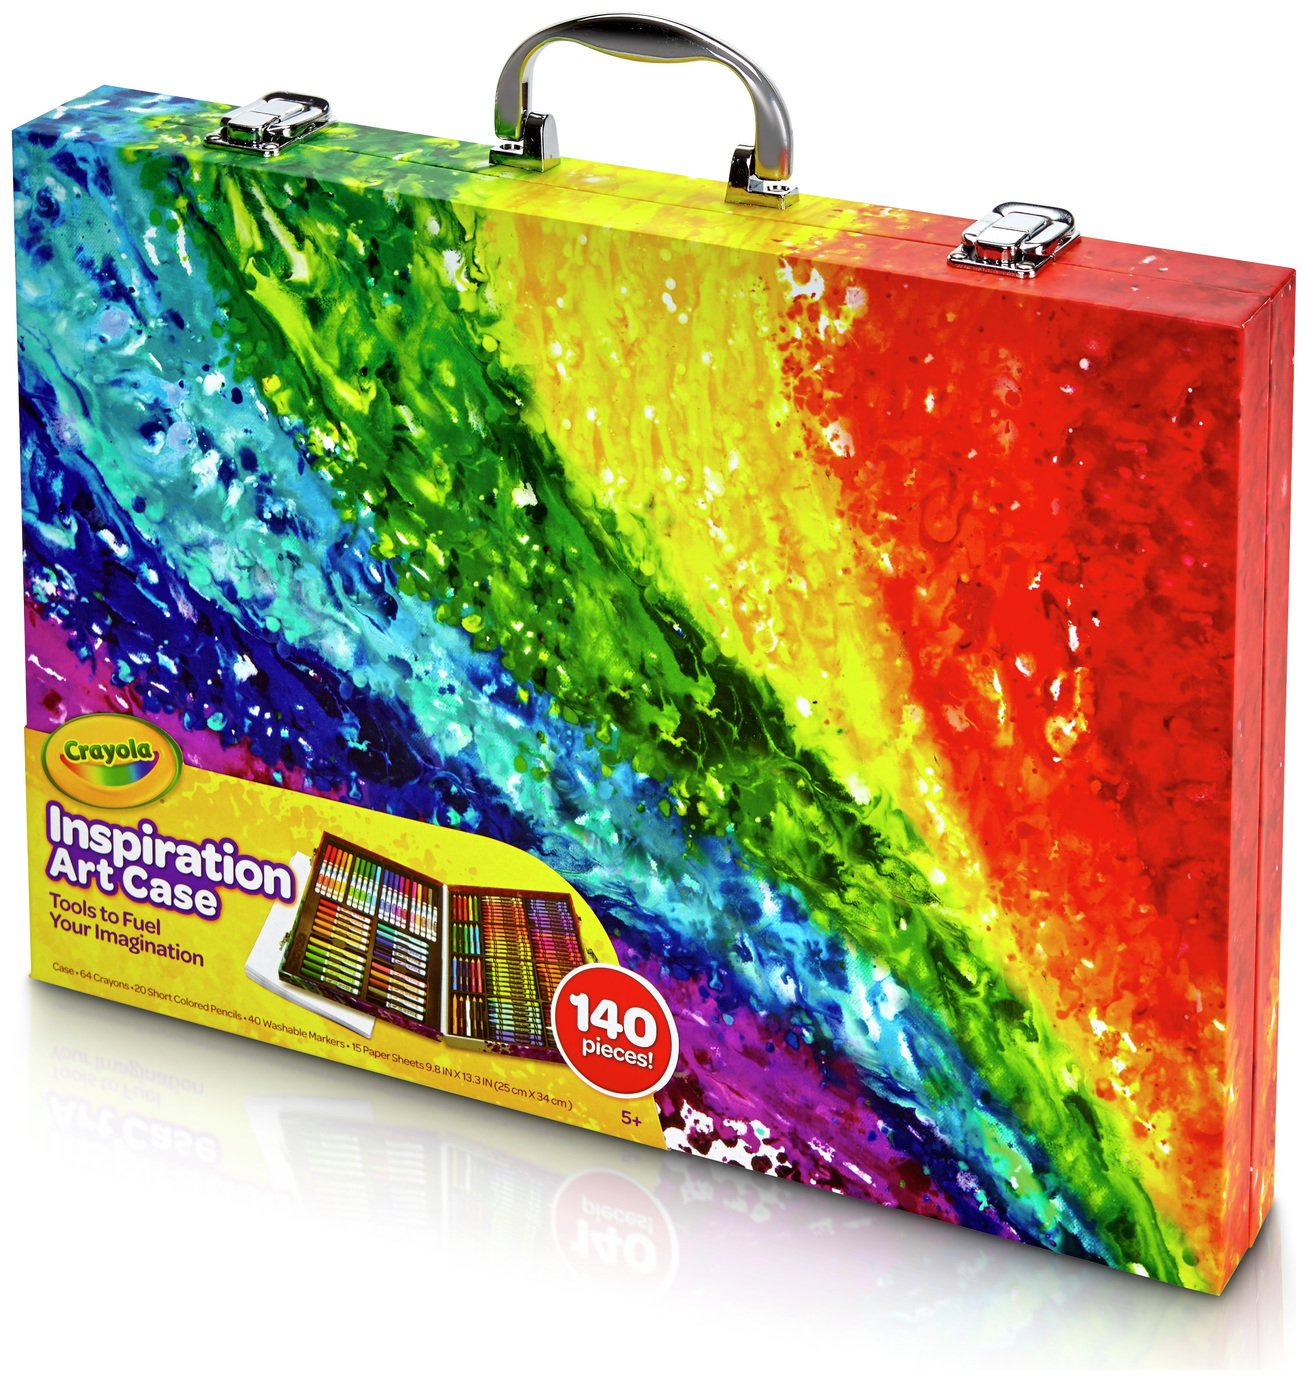 Crayola Inspirational Art Case from Crayola